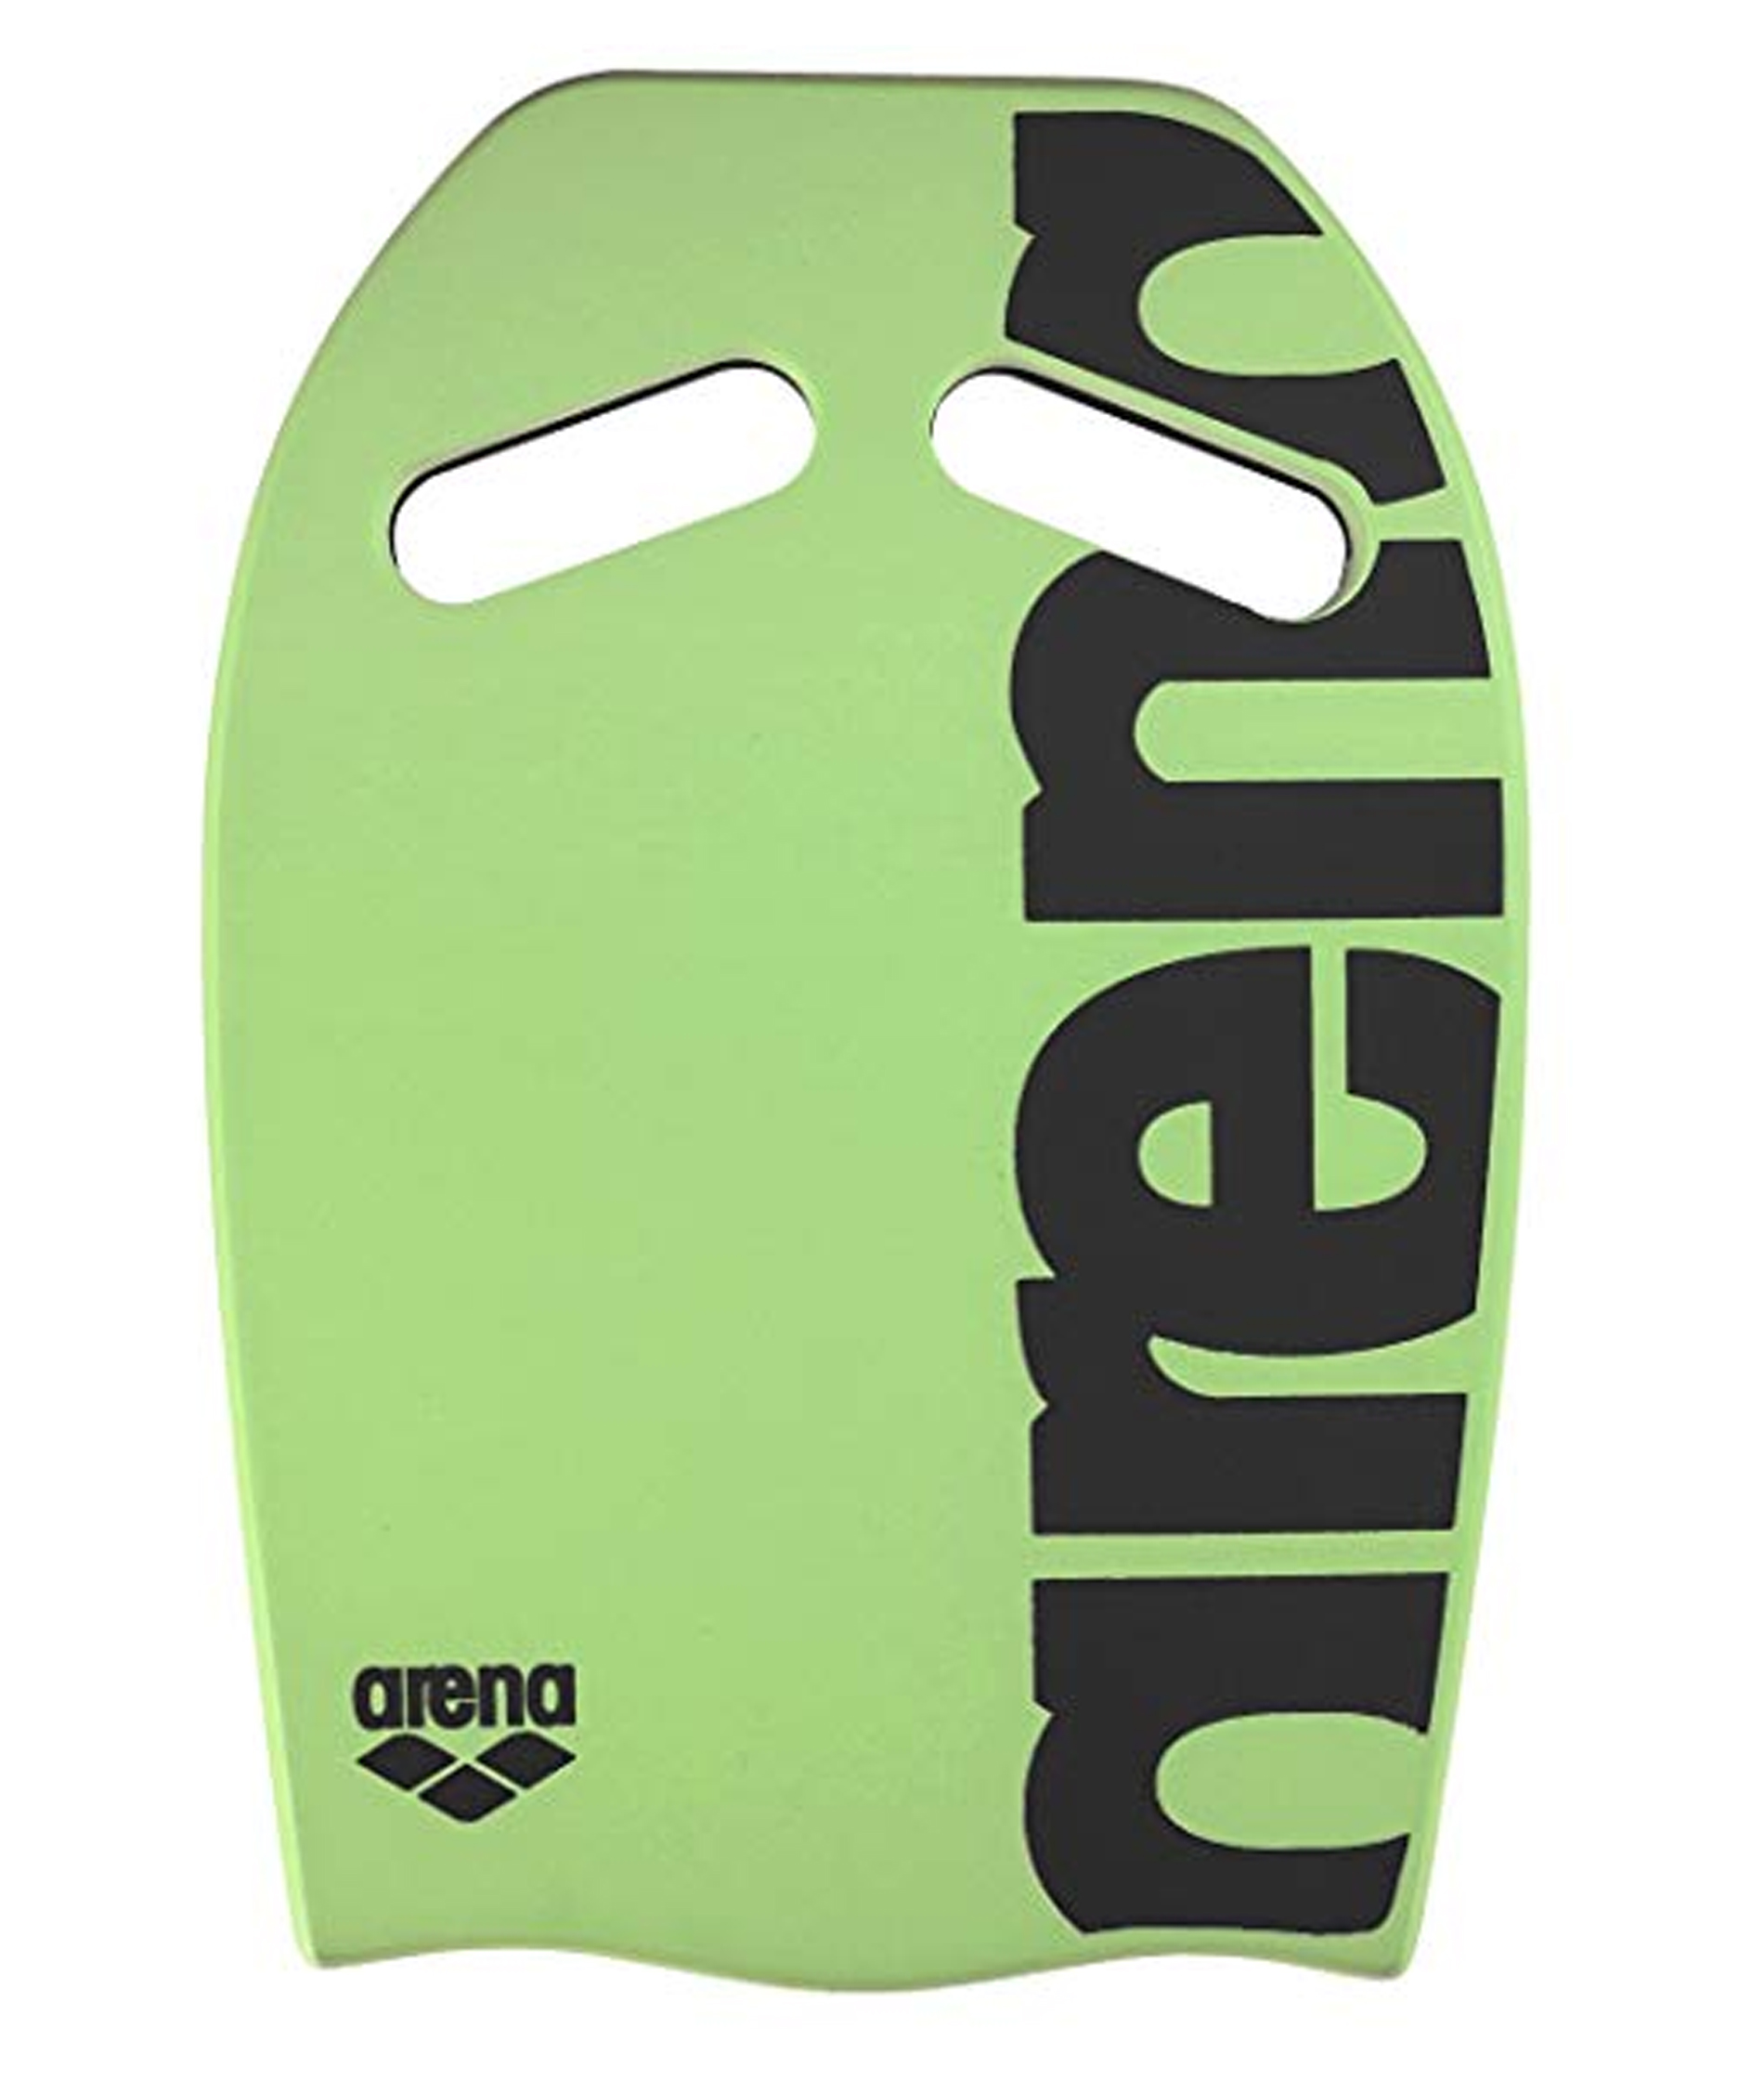 Arena Kickboard - Green/Black